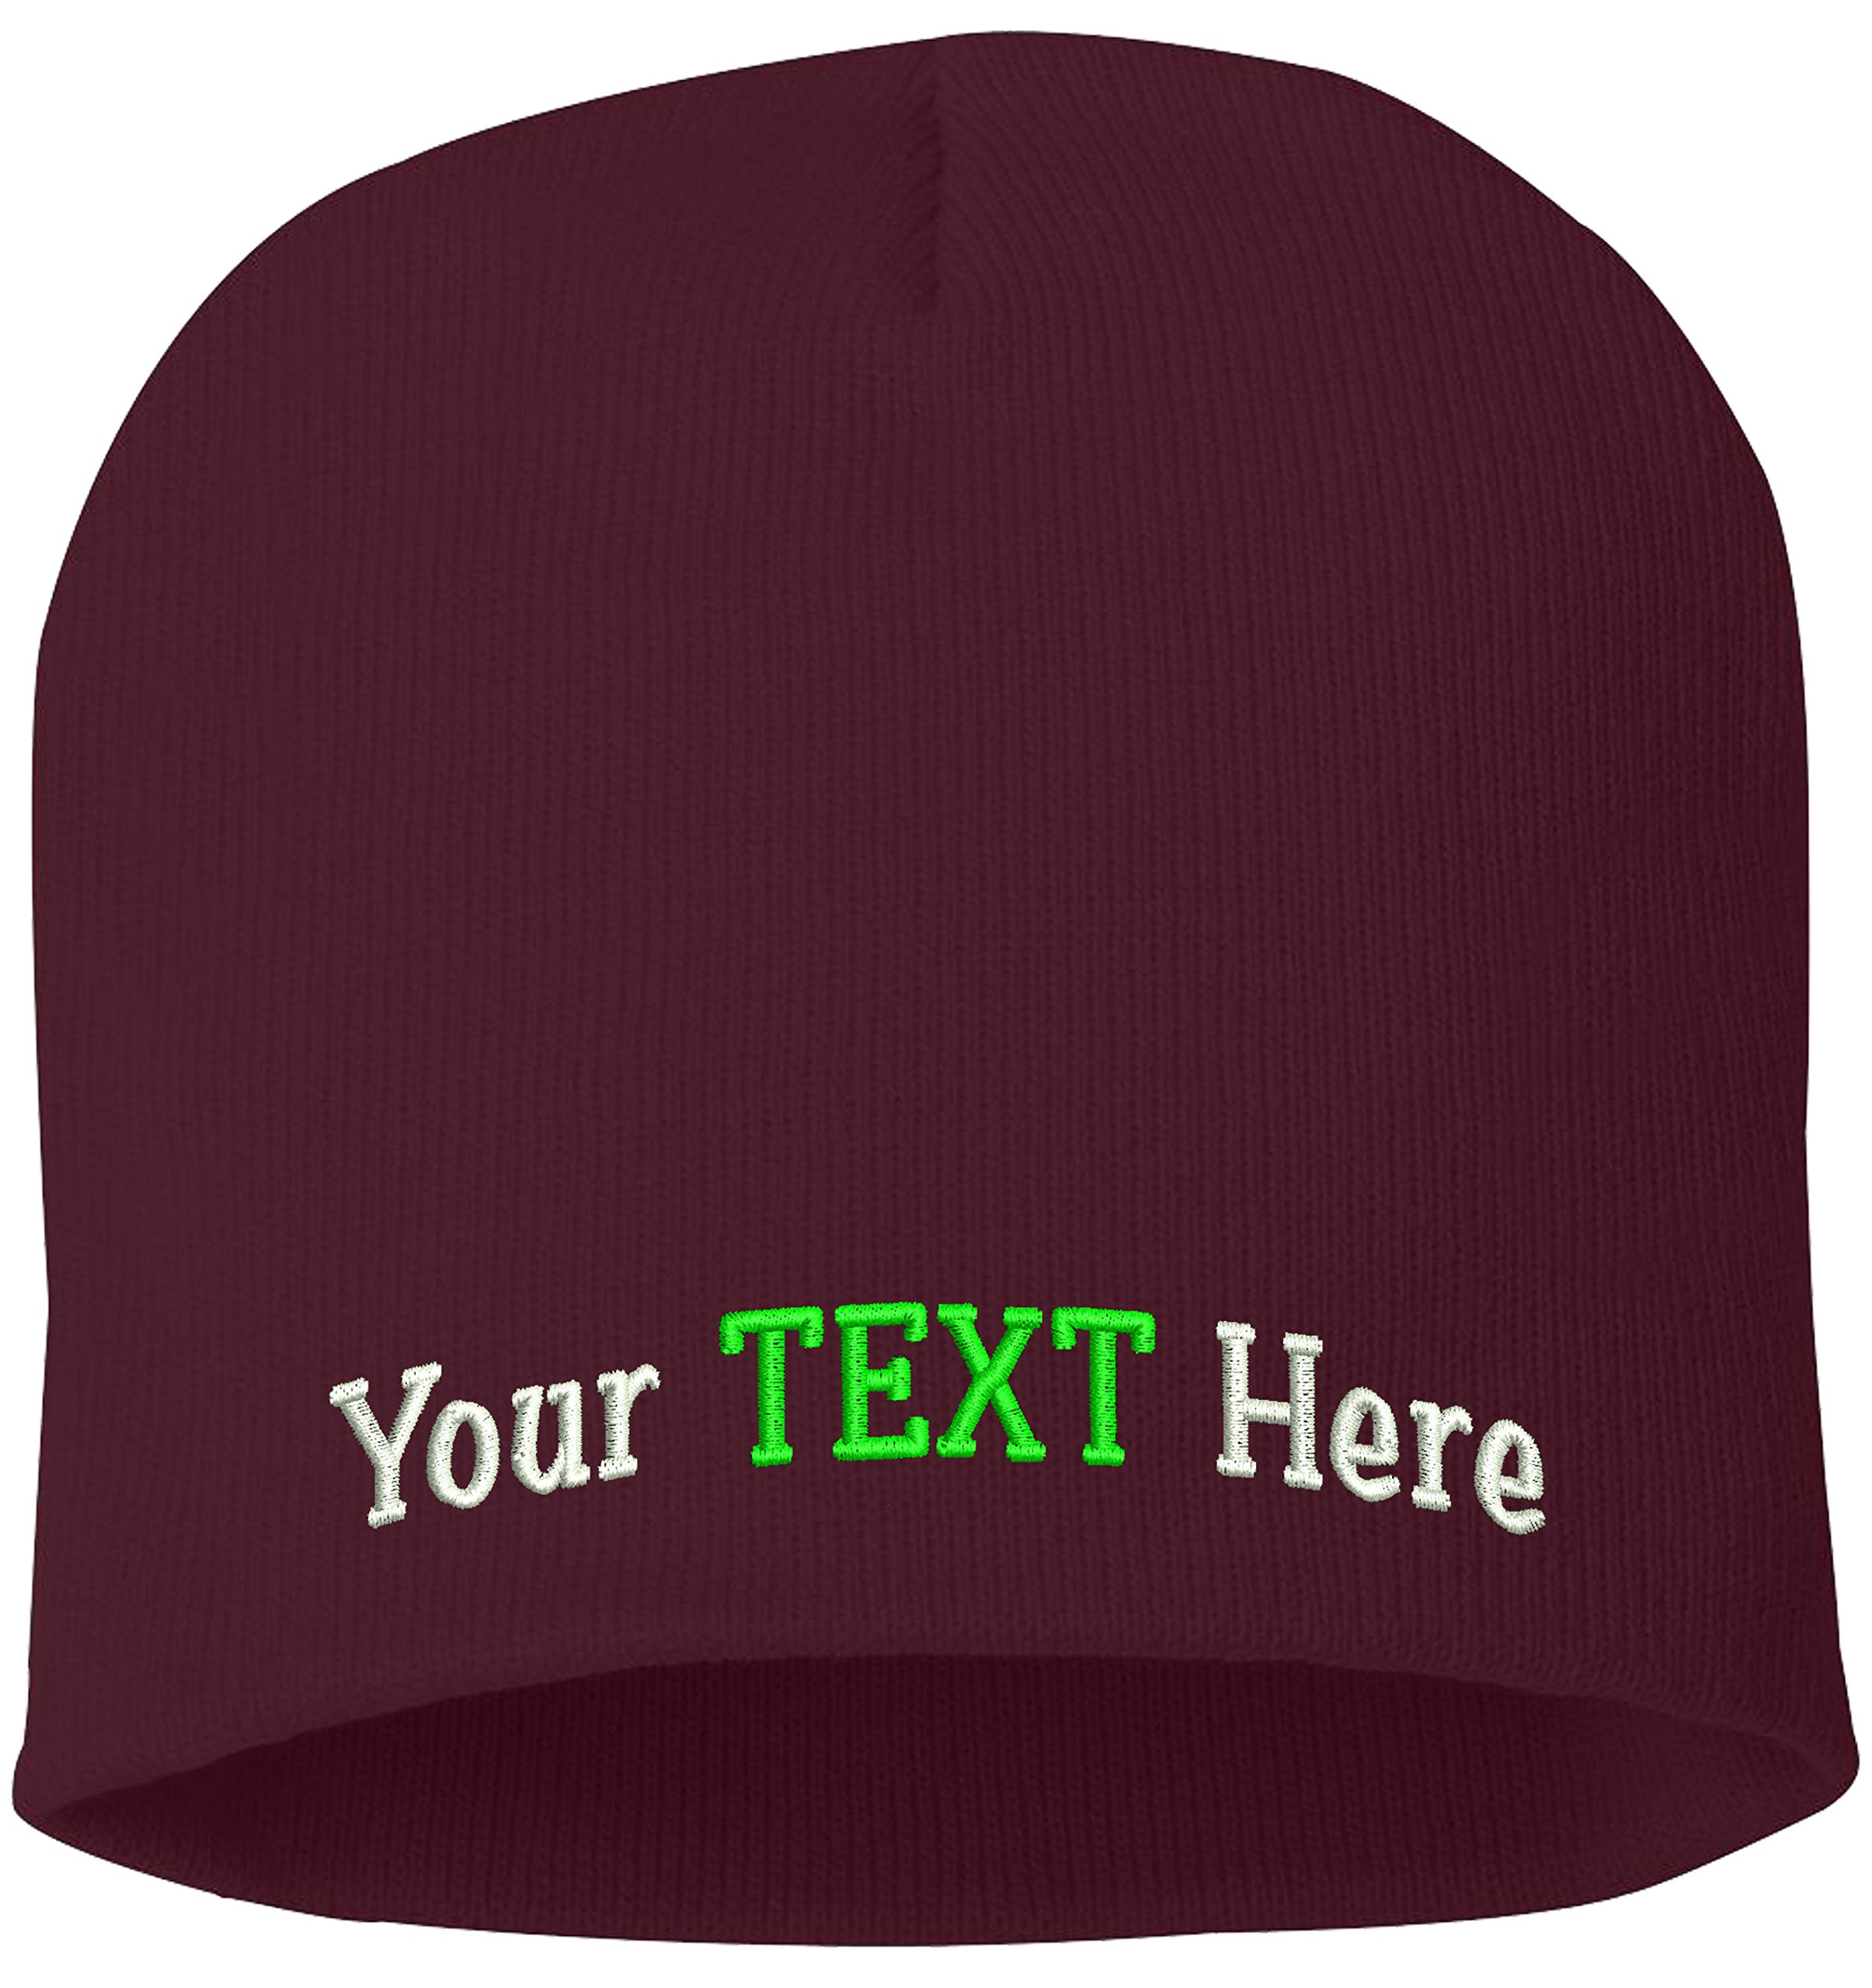 Peerless Skull Knit Hat With Custom Embroidery Your Text Here or Logo Here One Size SP08 (Maroon Knit W/Text, 6)